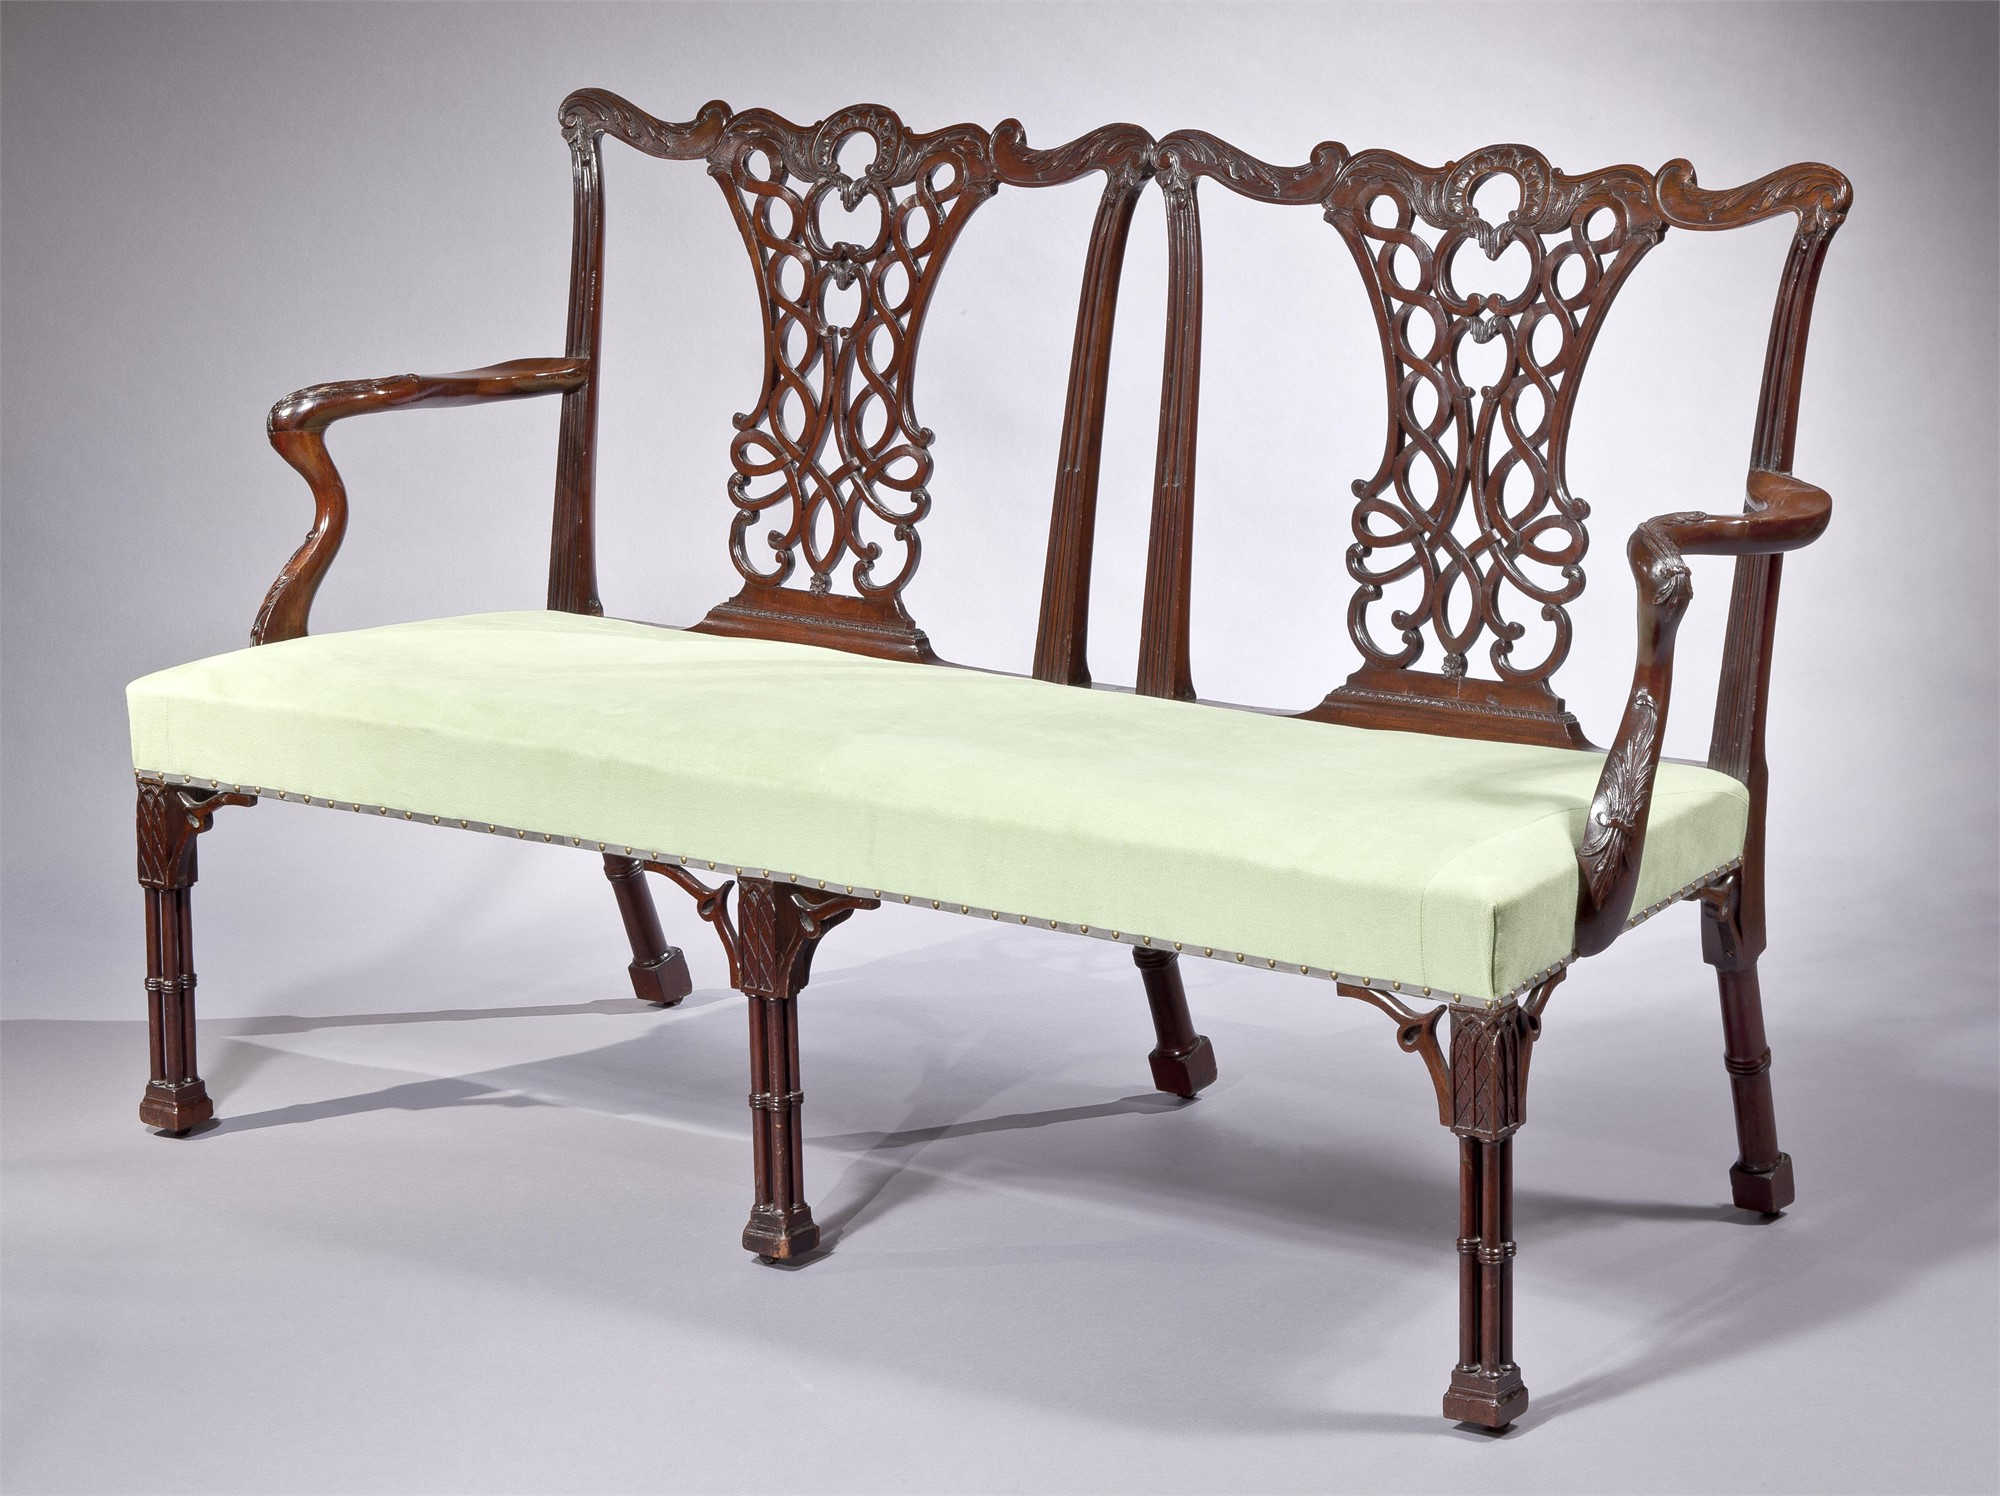 CHIPPENDALE MAHOGANY TWO-CHAIR SETTEE